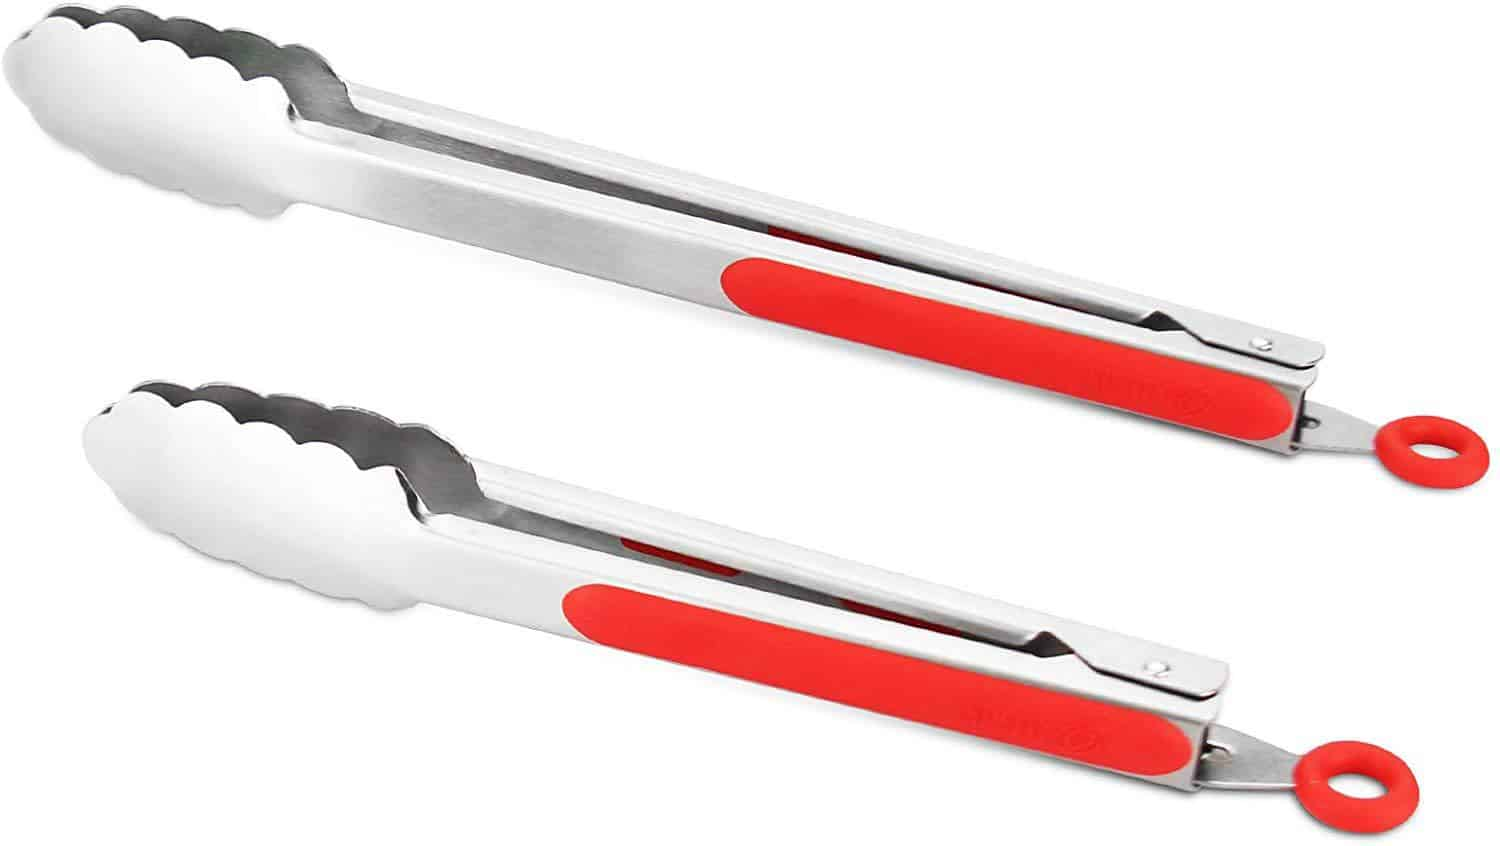 product image of Allwin-Houseware W 9-Inch & 12-Inch 304 Stainless Steel Kitchen Tongs, Set of 2 Sturdy Non-Stick Grilling